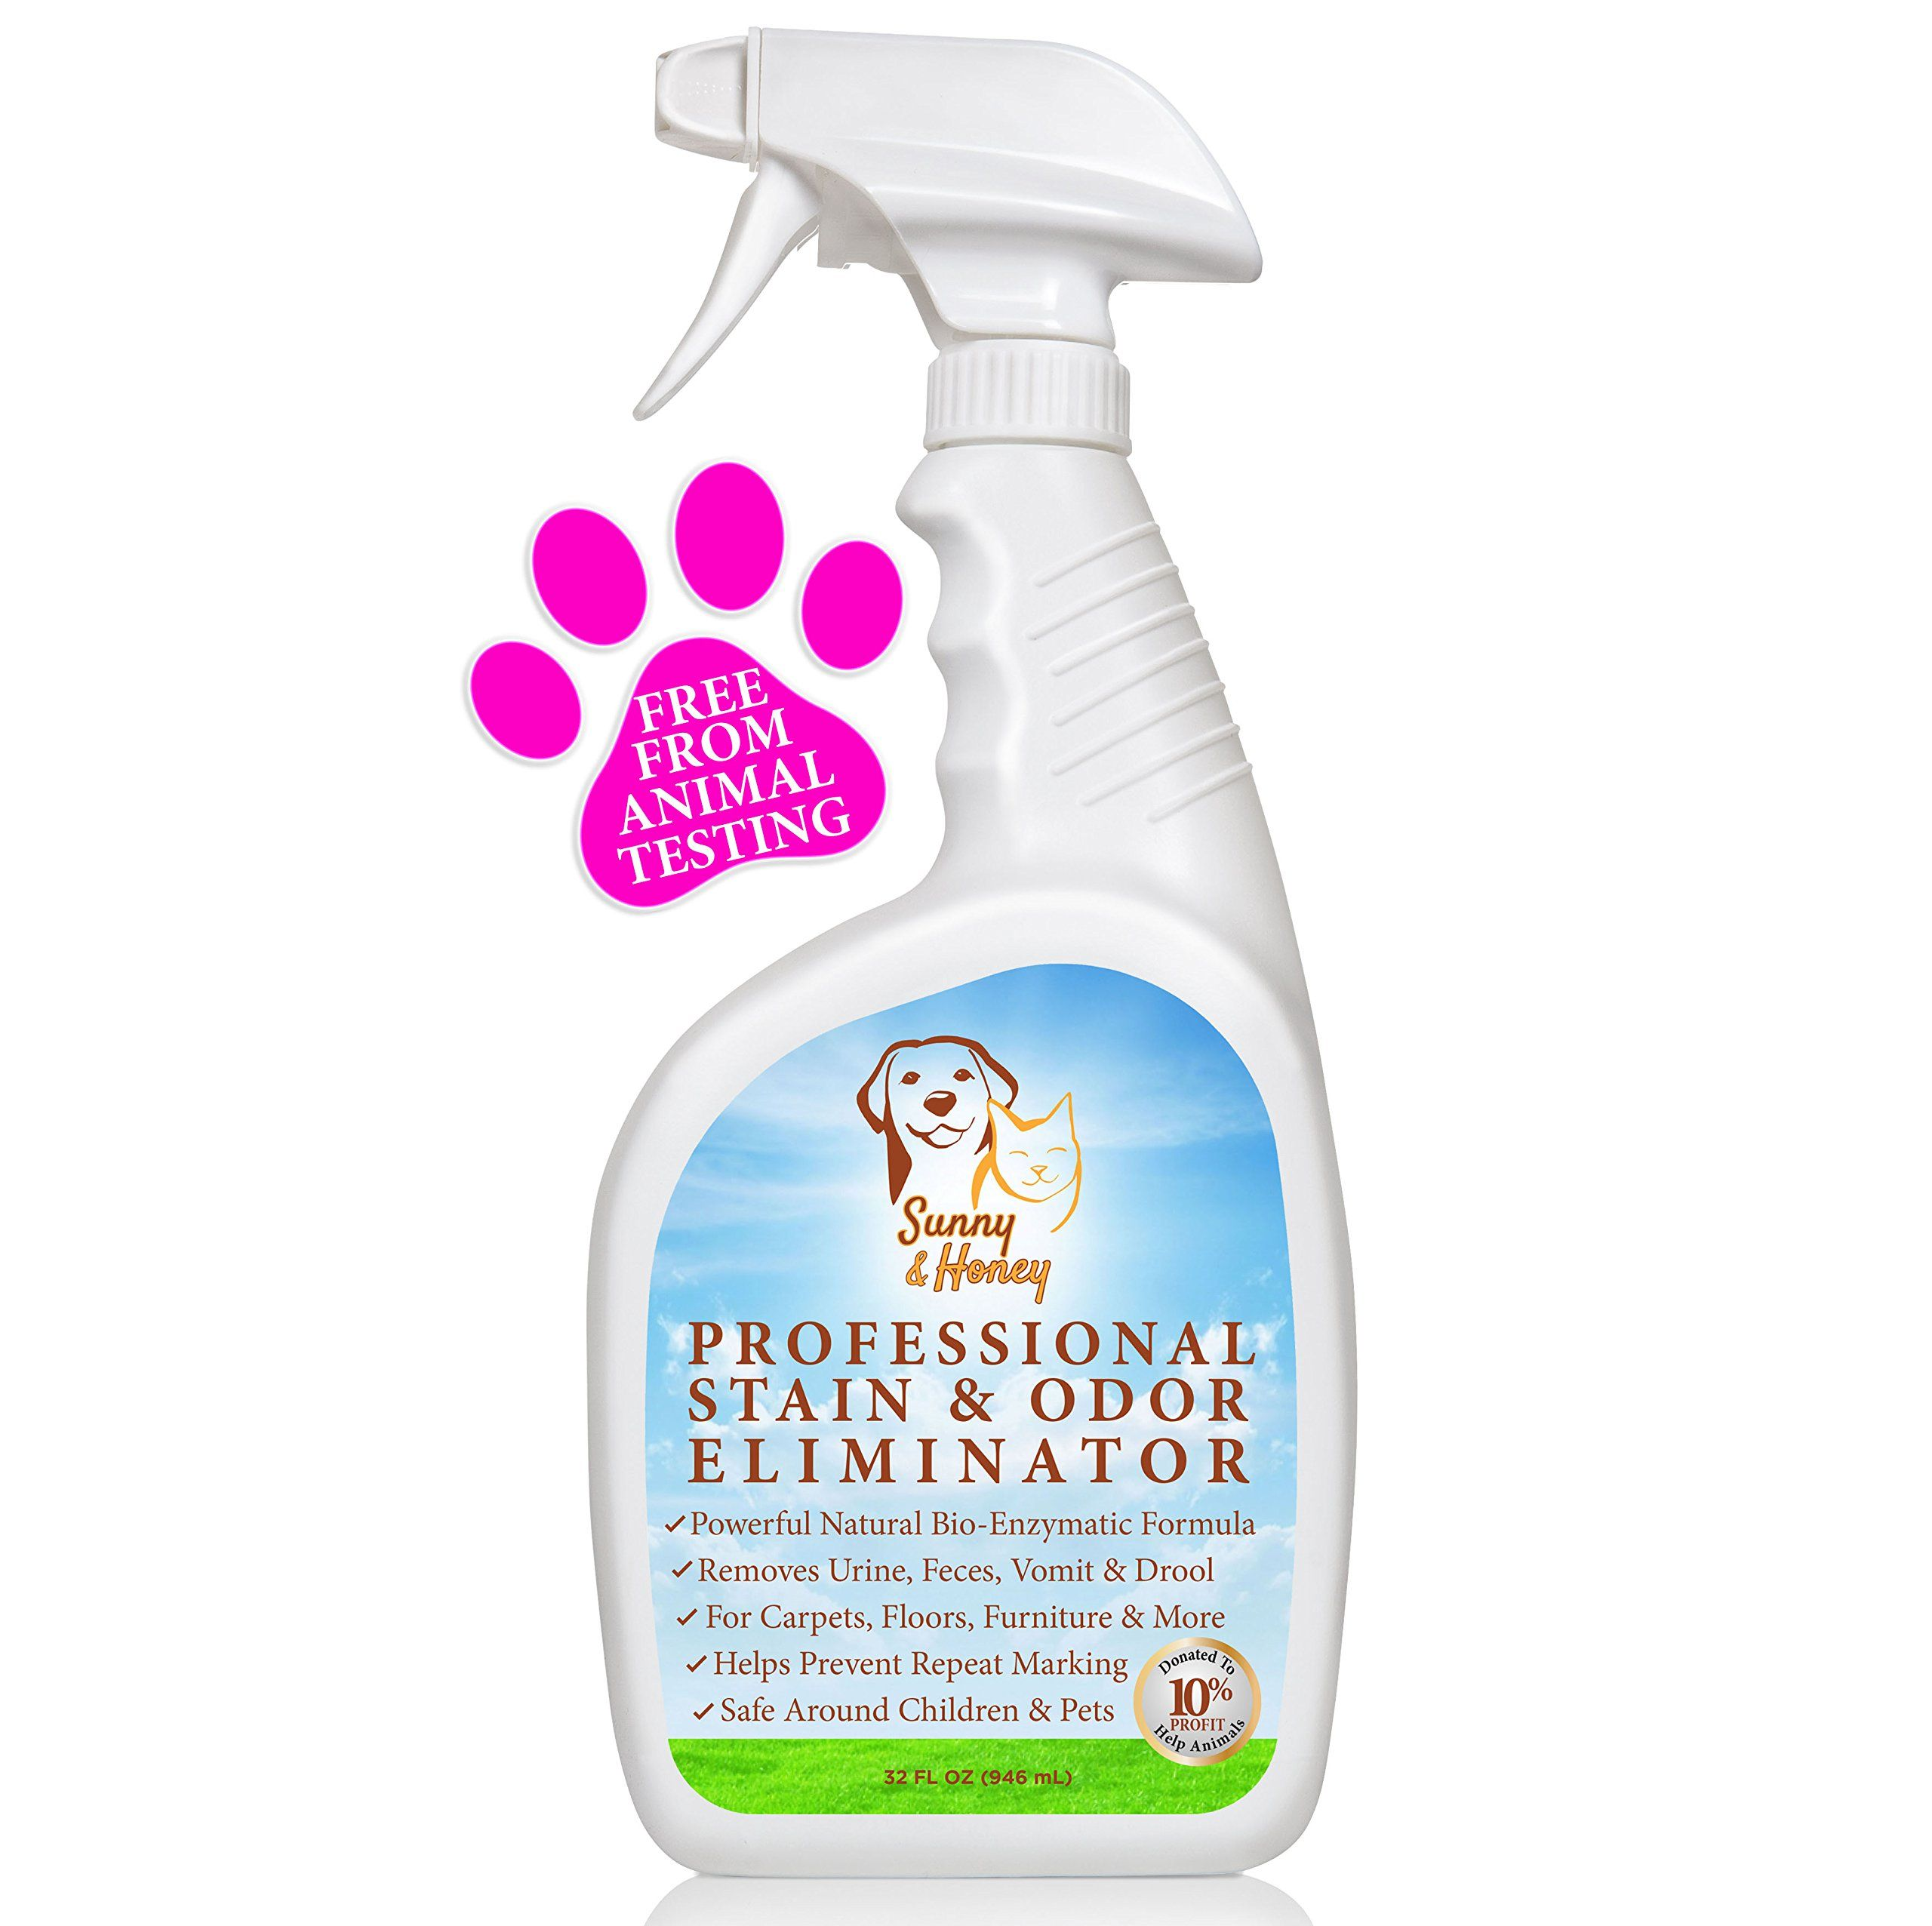 Amazoncom Enzyme Cleaner Pet Stain Remover Odor Eliminator